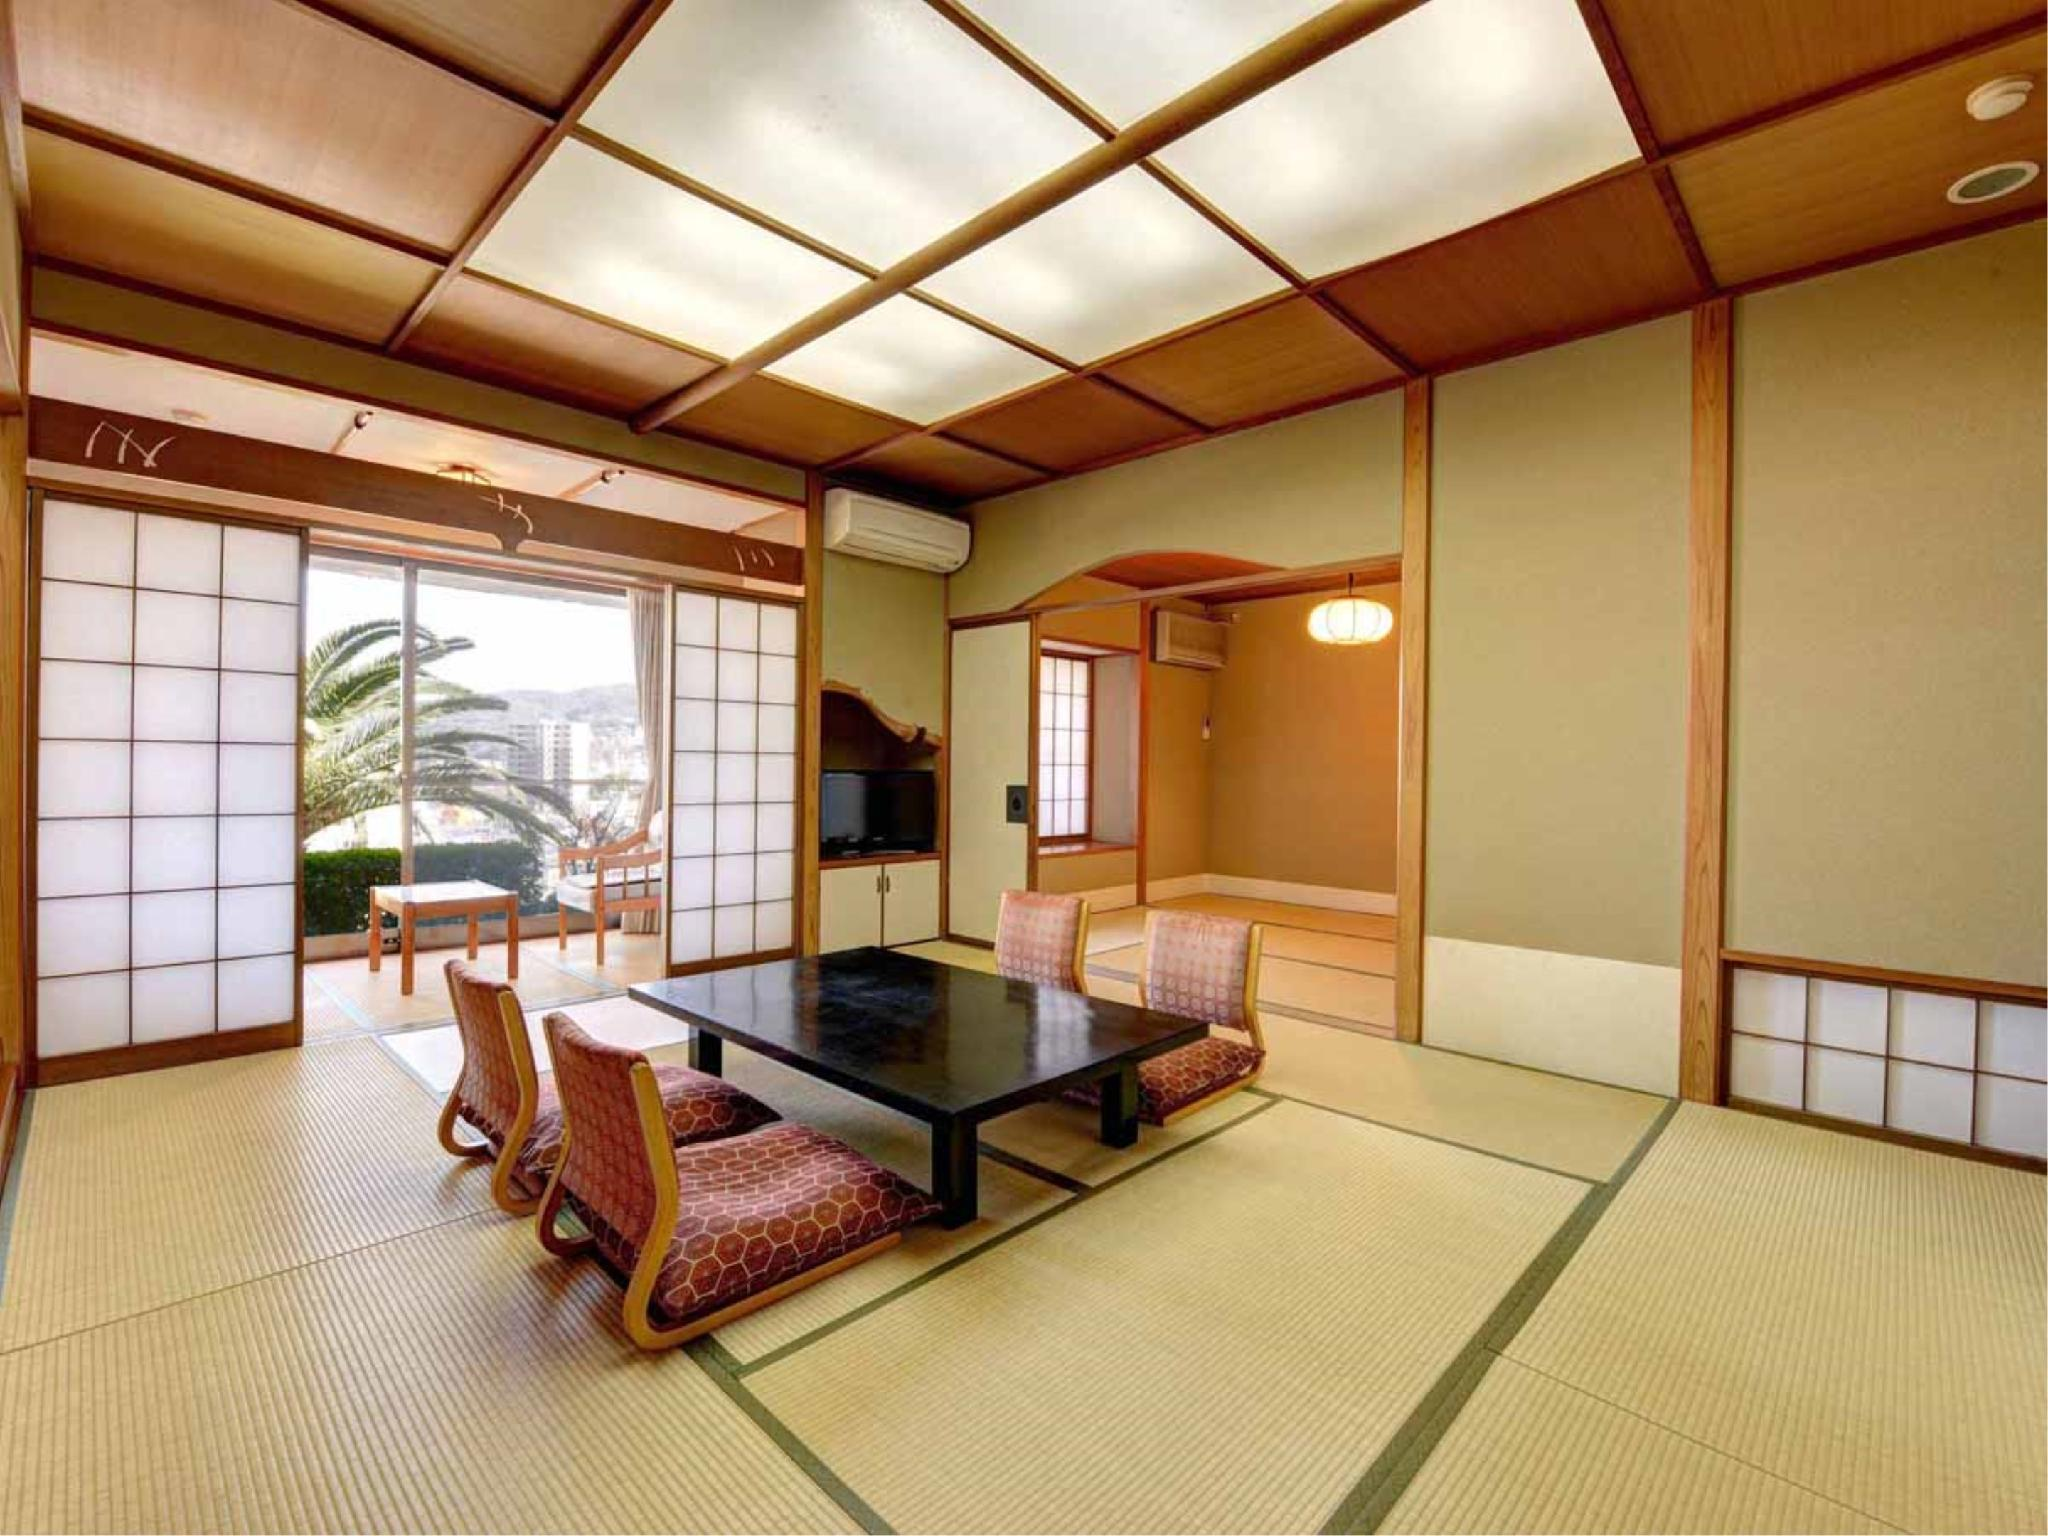 다다미 객실(별채) (Detached Japanese-style Room)